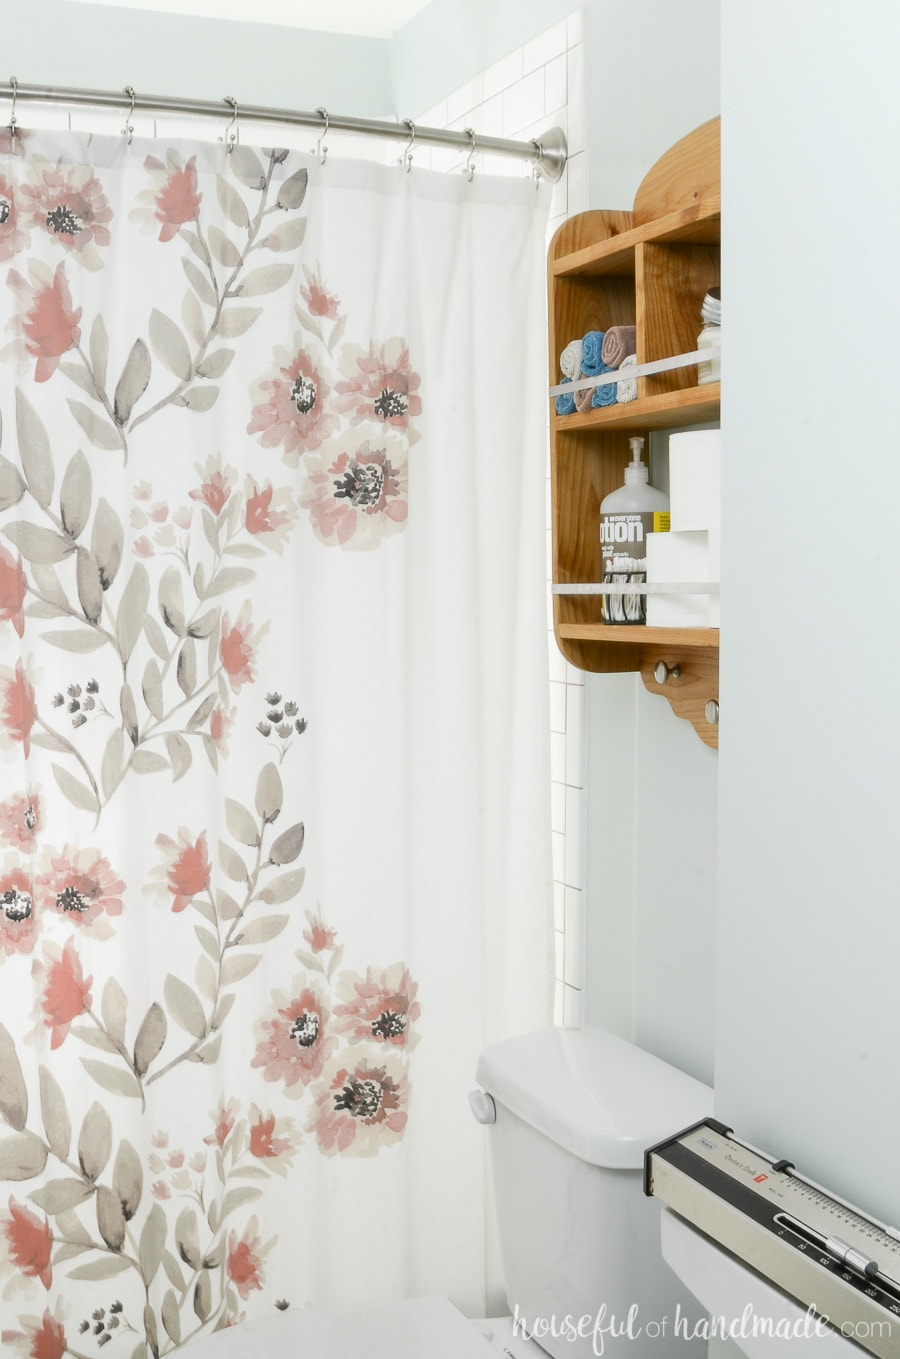 Wood over toilet shelves storing toilet paper and other bathroom items. Next to watercolor floral shower curtain.